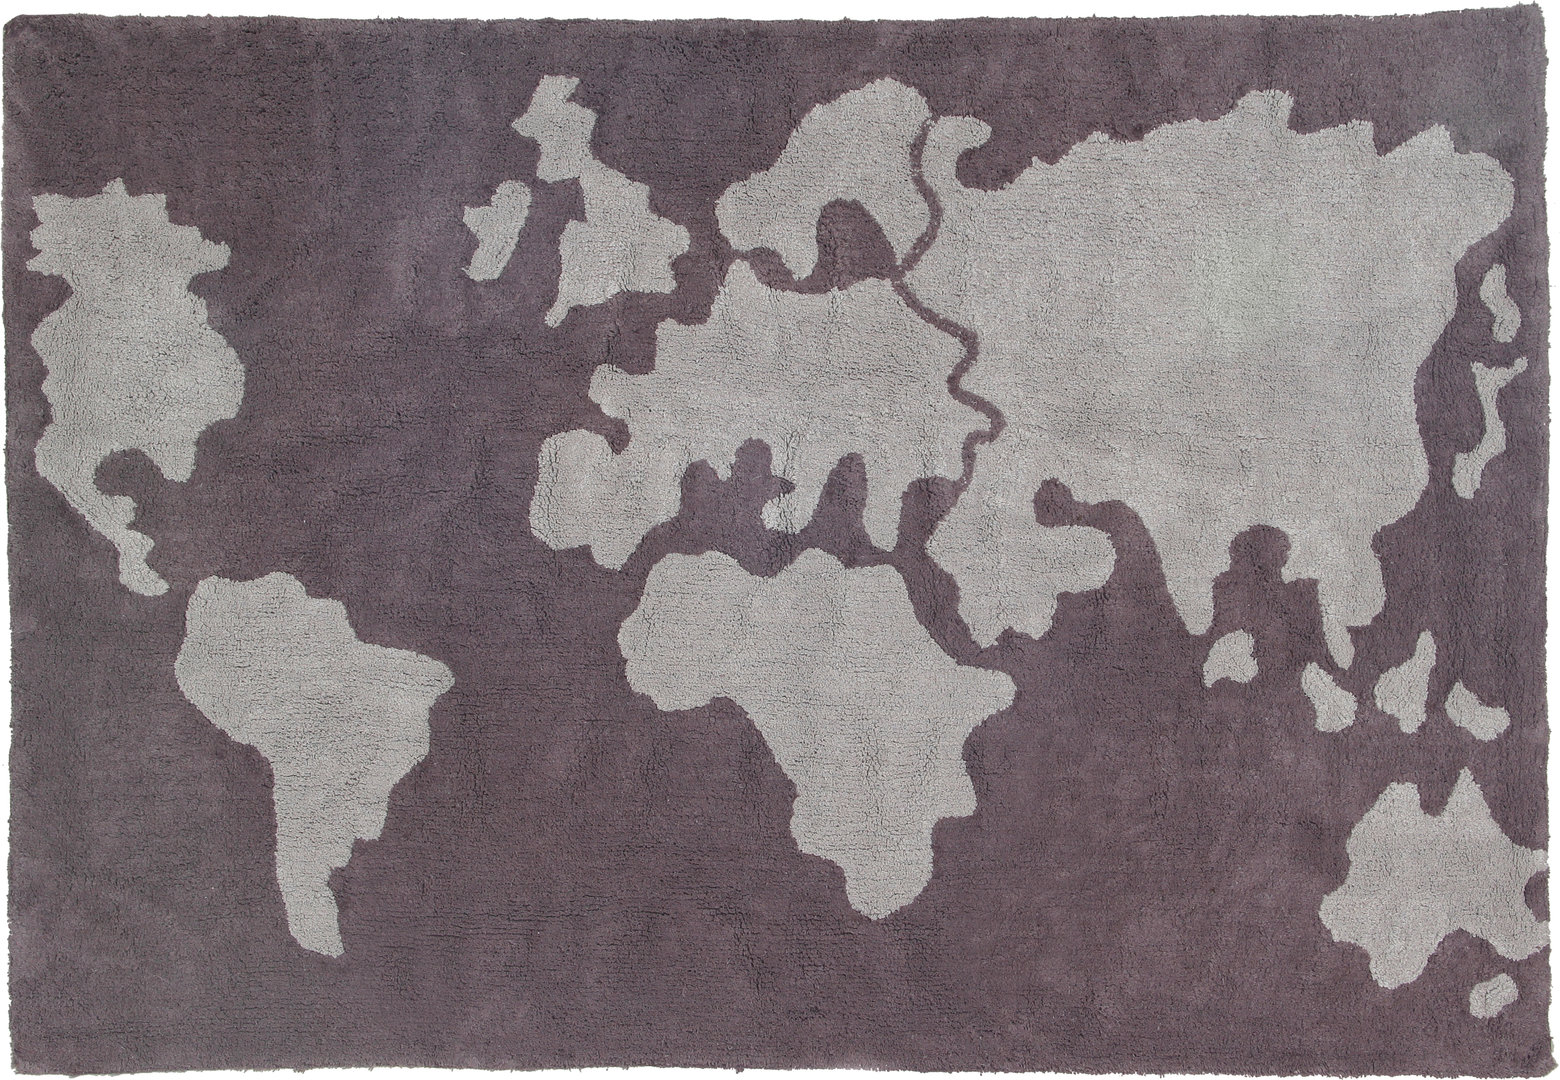 Alfombra lorena canals lavable world map enfants et maison - Alfombra lorena canals oferta ...